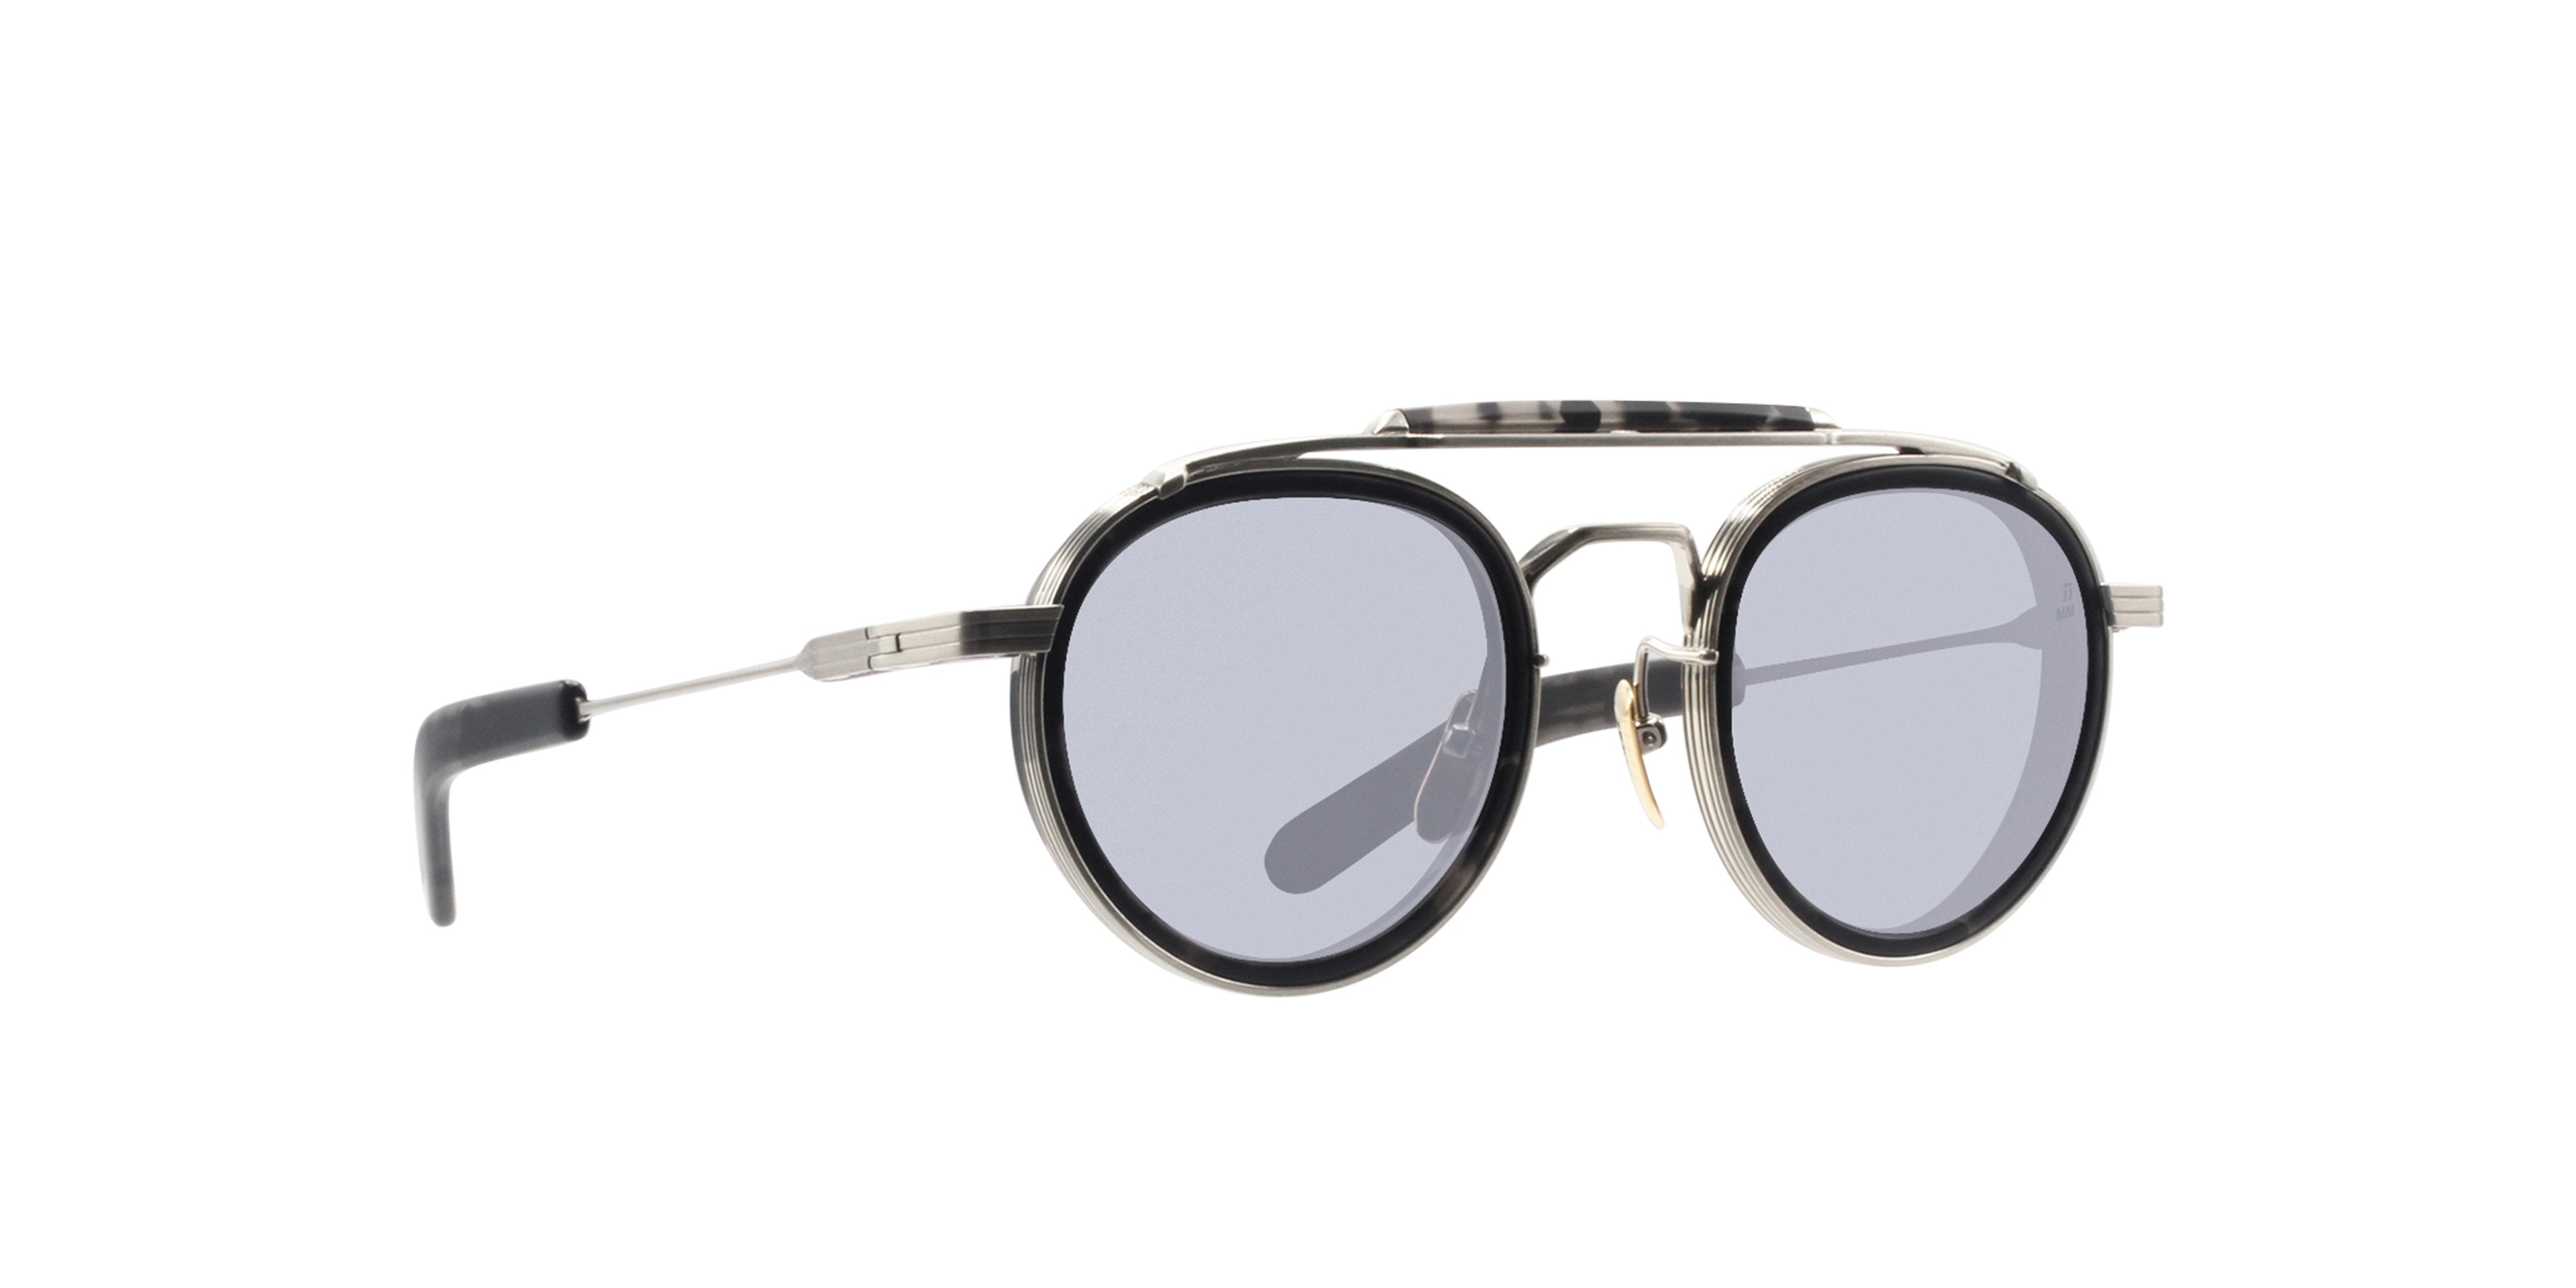 Jacques Marie Mage - Cassady Silver/Blue Oval Unisex Sunglasses - 48mm-Sunglasses-Designer Eyes